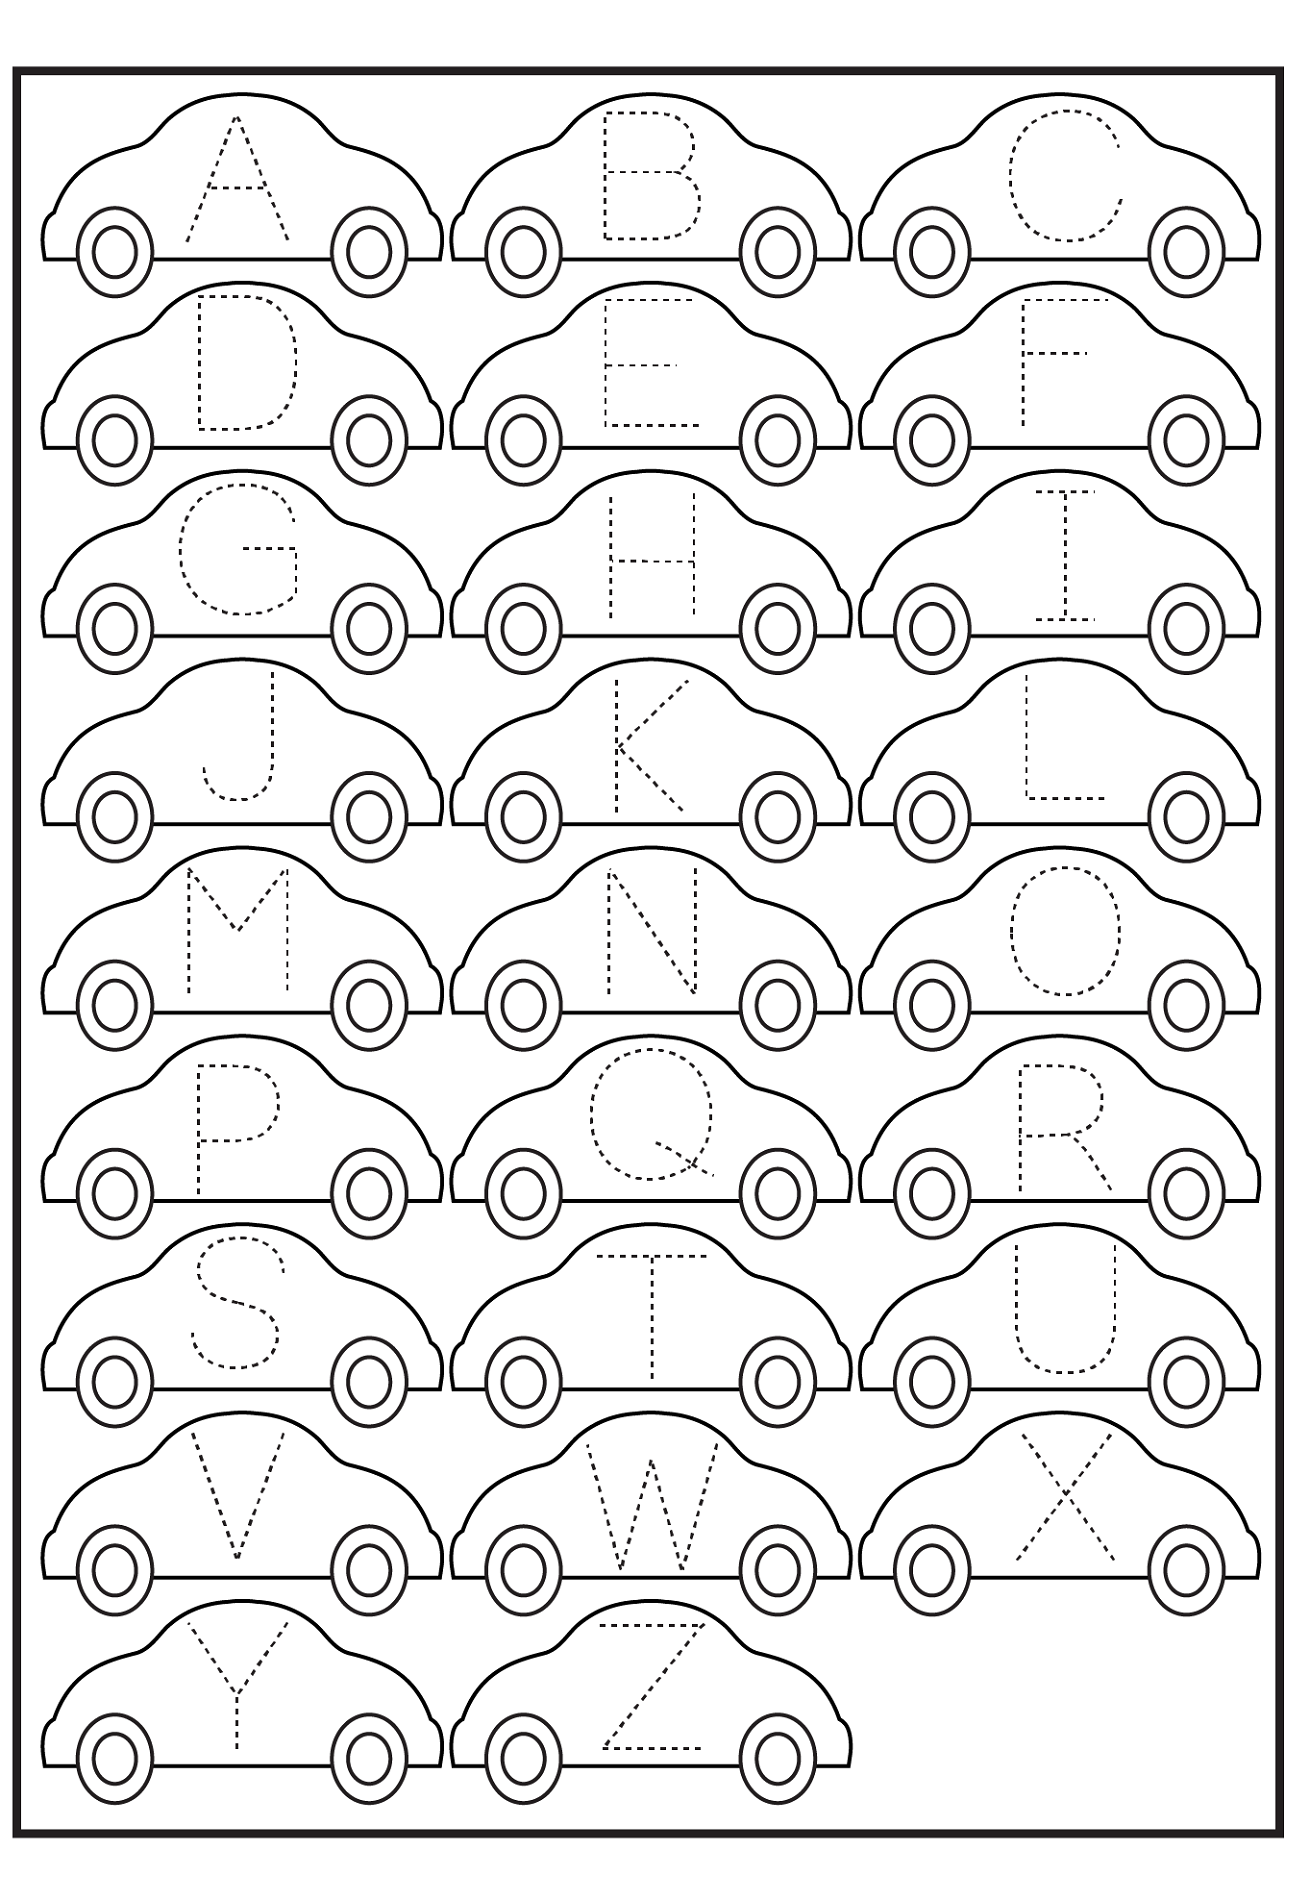 abc traceable worksheets cars